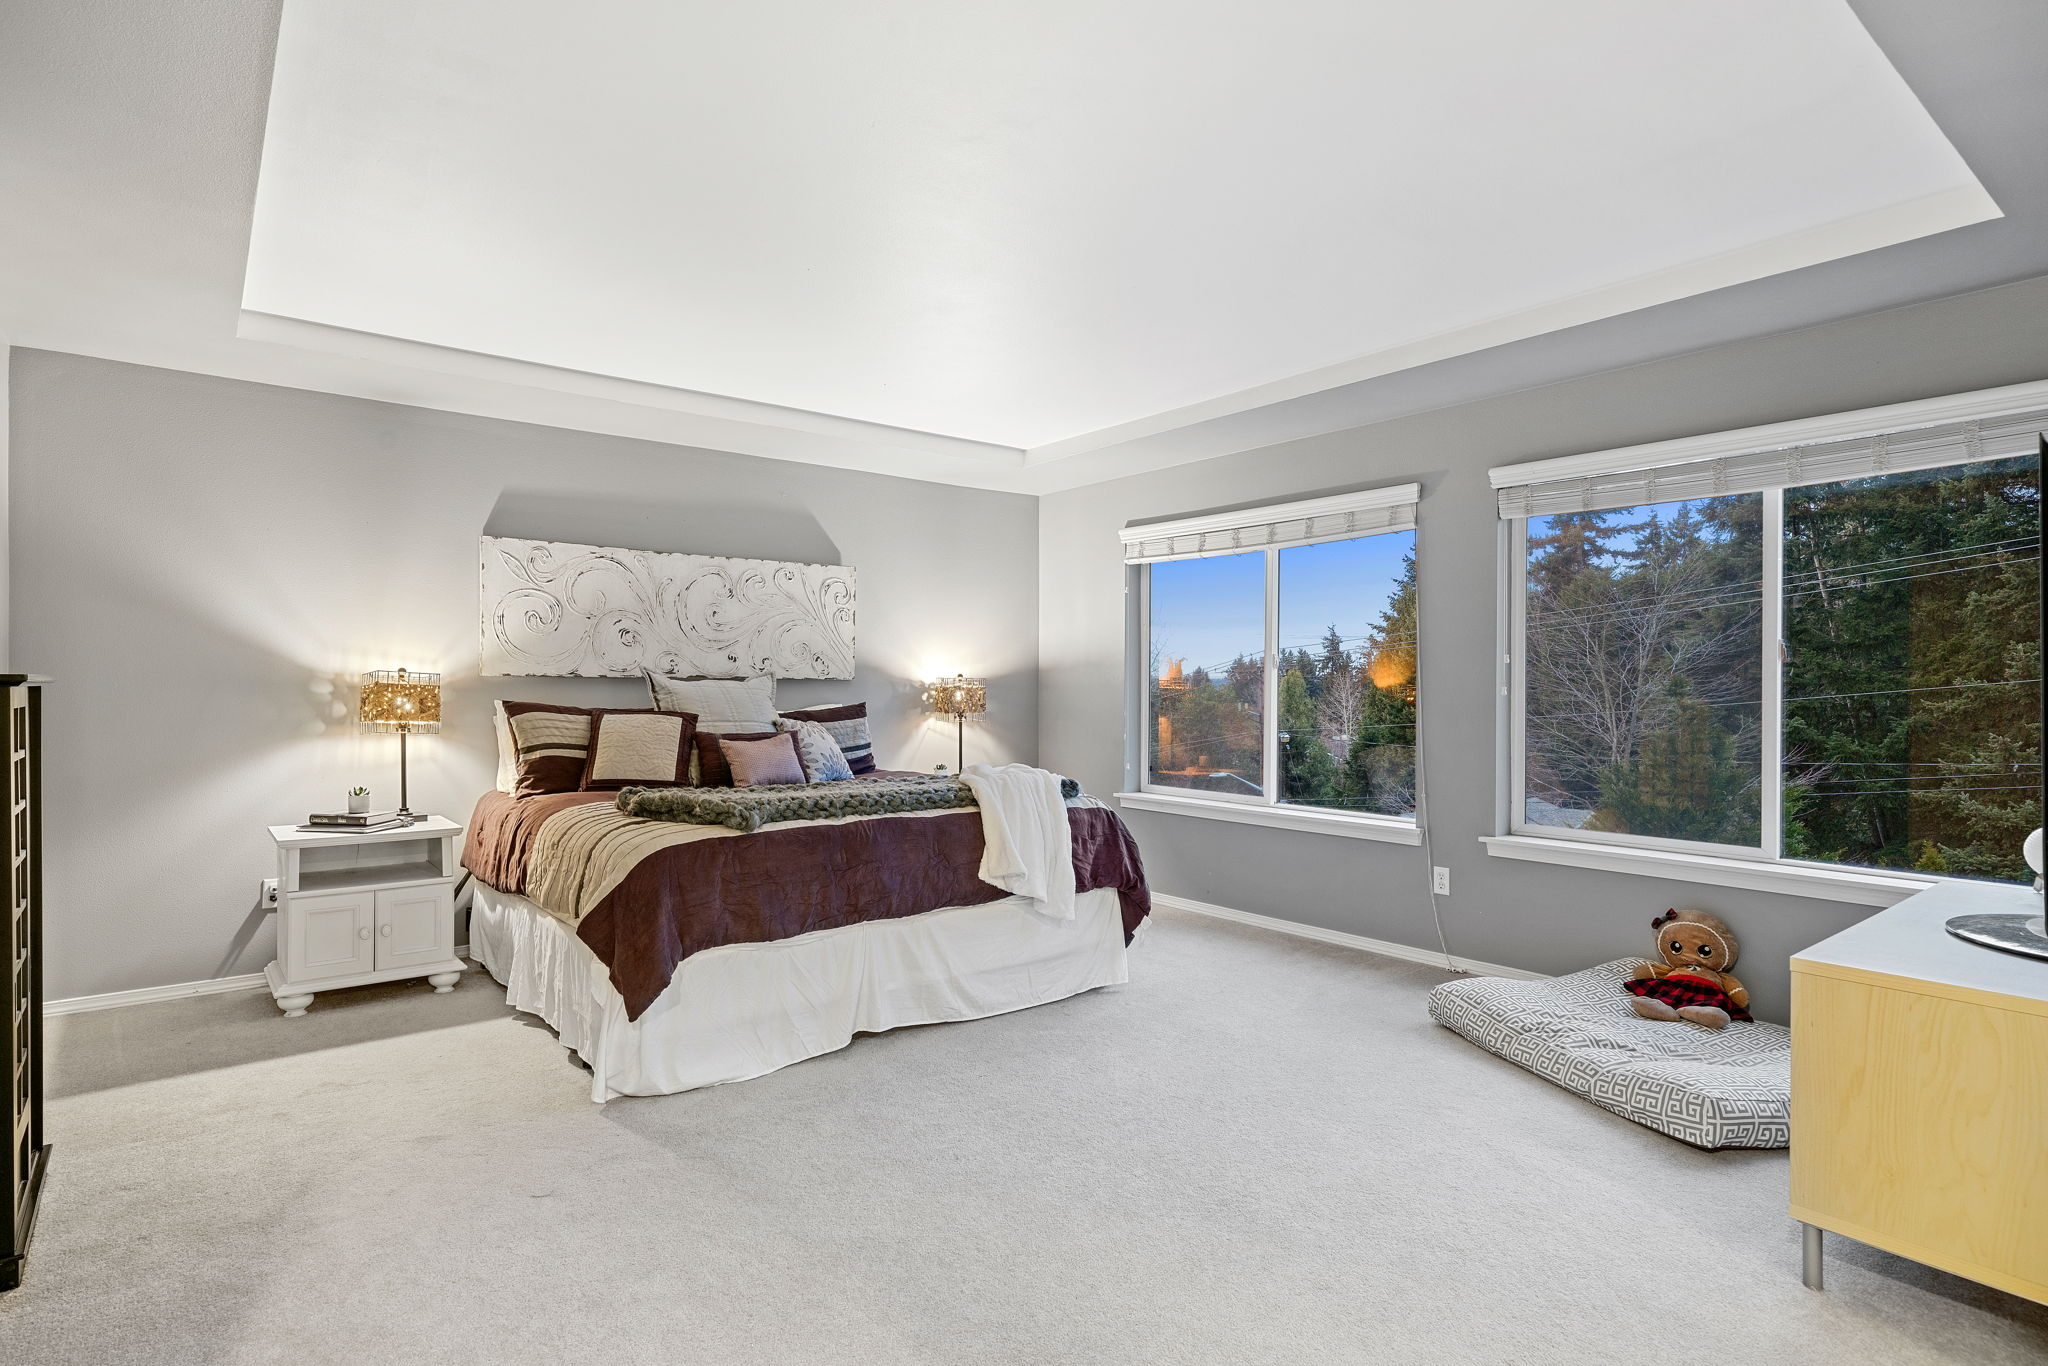 The master bedroom is oversized allowing lots of furniture placement options!